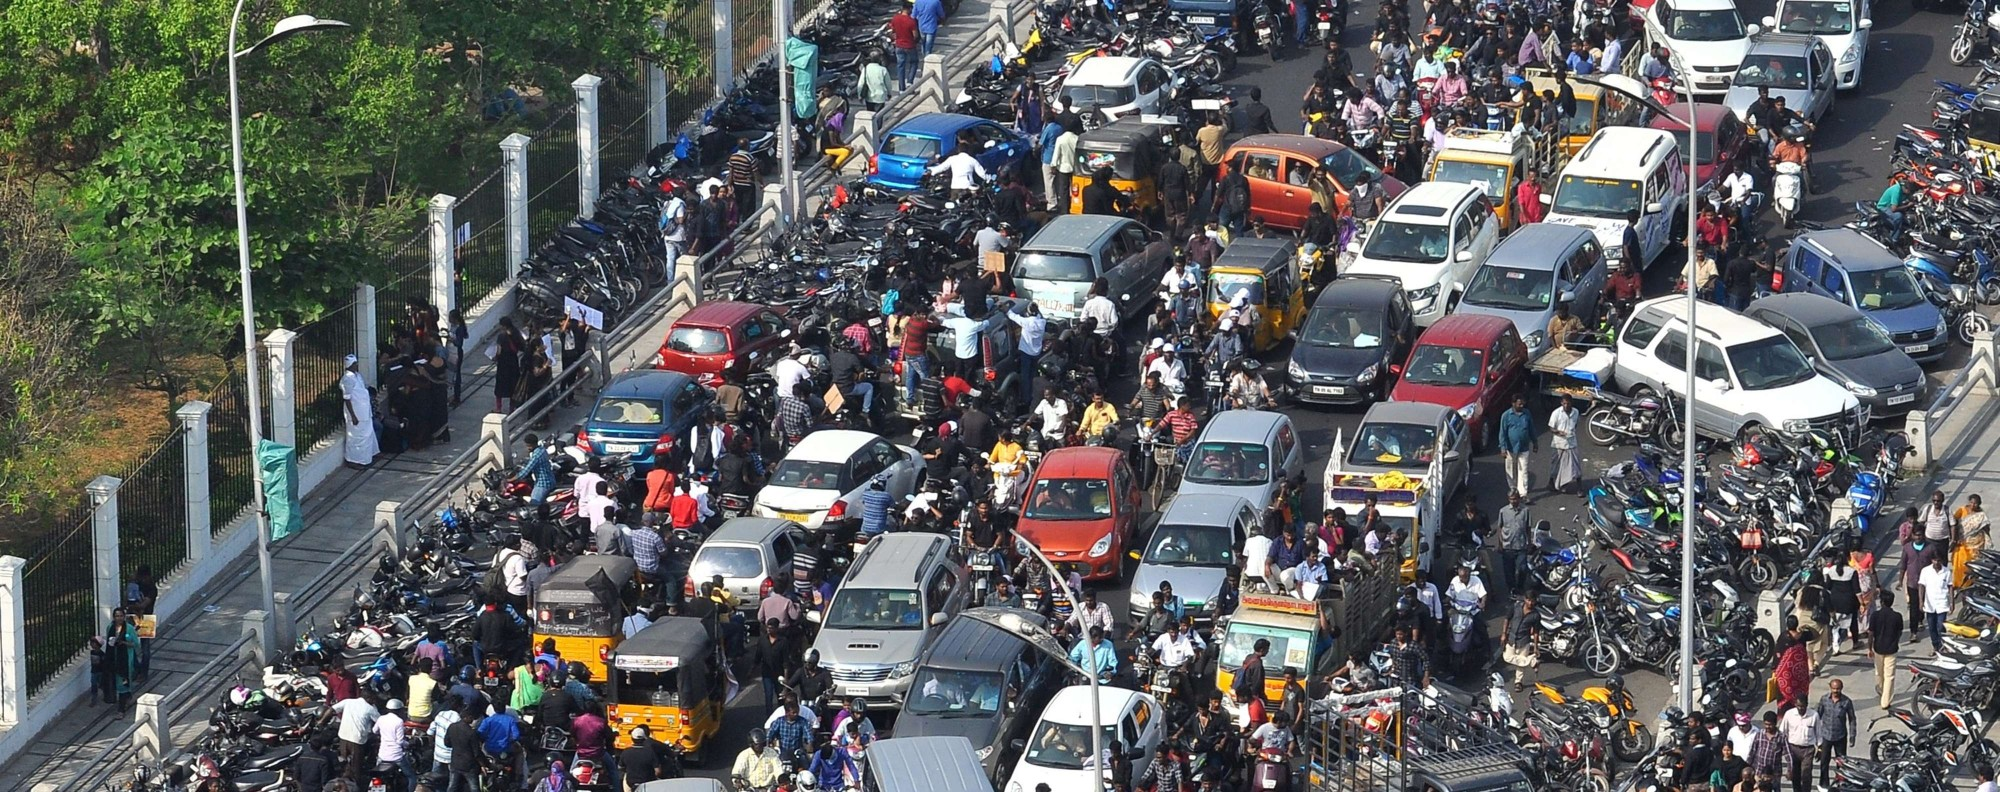 Protestors fill the streets in Tamil Nadu. Photo: EPA